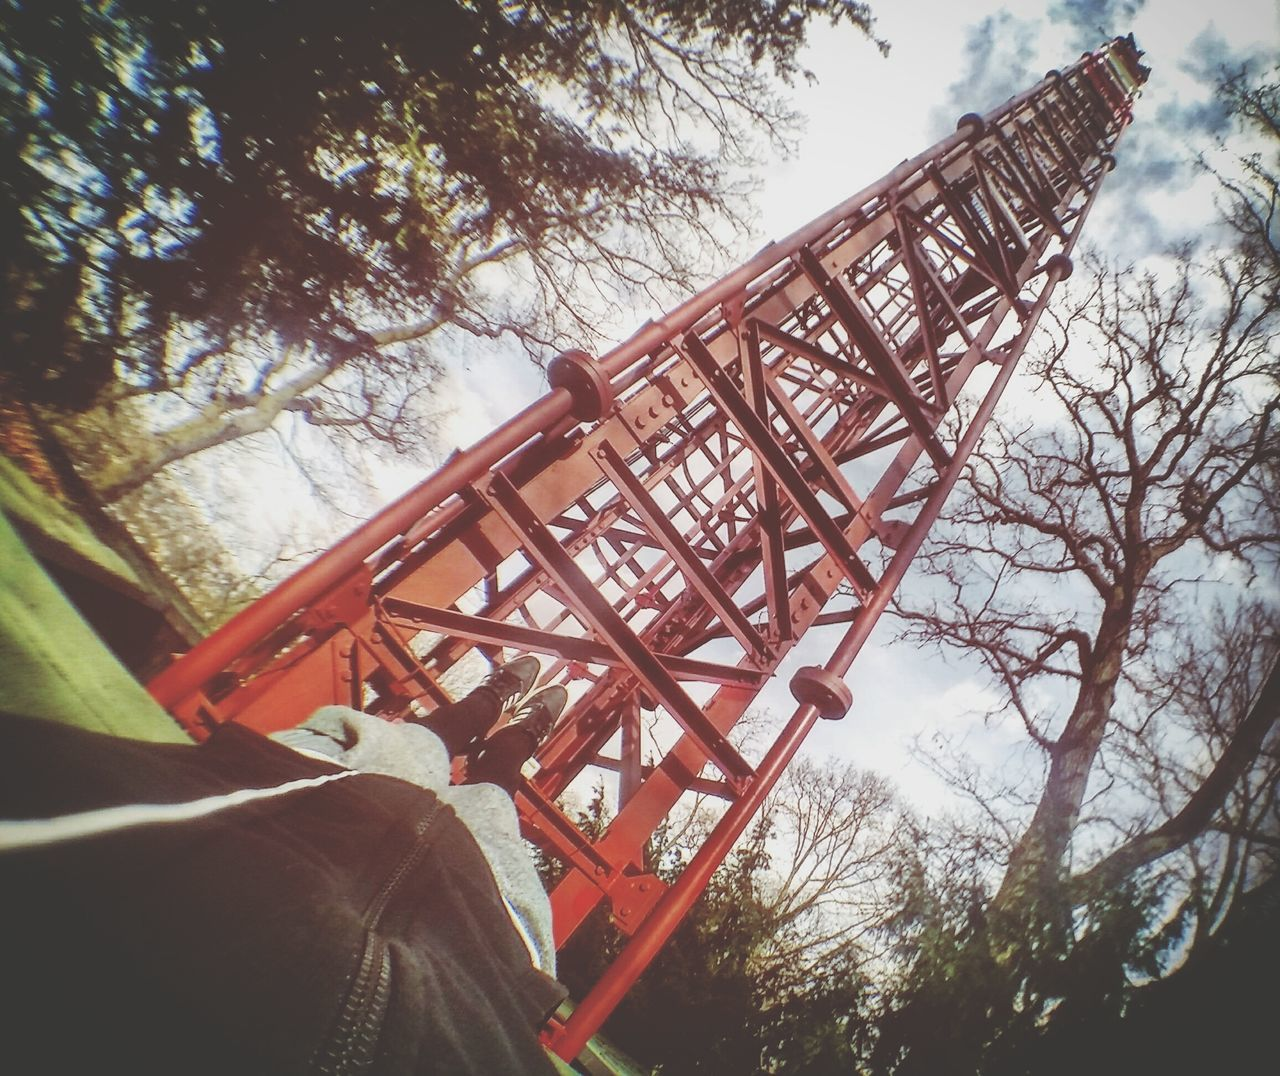 My personal climb training . I climbing this communication tower from the extern face with just my hand and feet and Music 🉐😊 2-3 per week's good mental / Arms / Legs / Support training Tree One Person Low Angle View Day Outdoors Sky Nature Beauty In Nature People Freerunning Sportlife Youngwildandfree Sports Photography Training Exploring Urbex_rebels Urbex France Parkourlife Young Adult Cold Temperature Teacherslife Parkour Traceur Parkoureducation Climbing_pictures_of_instagram